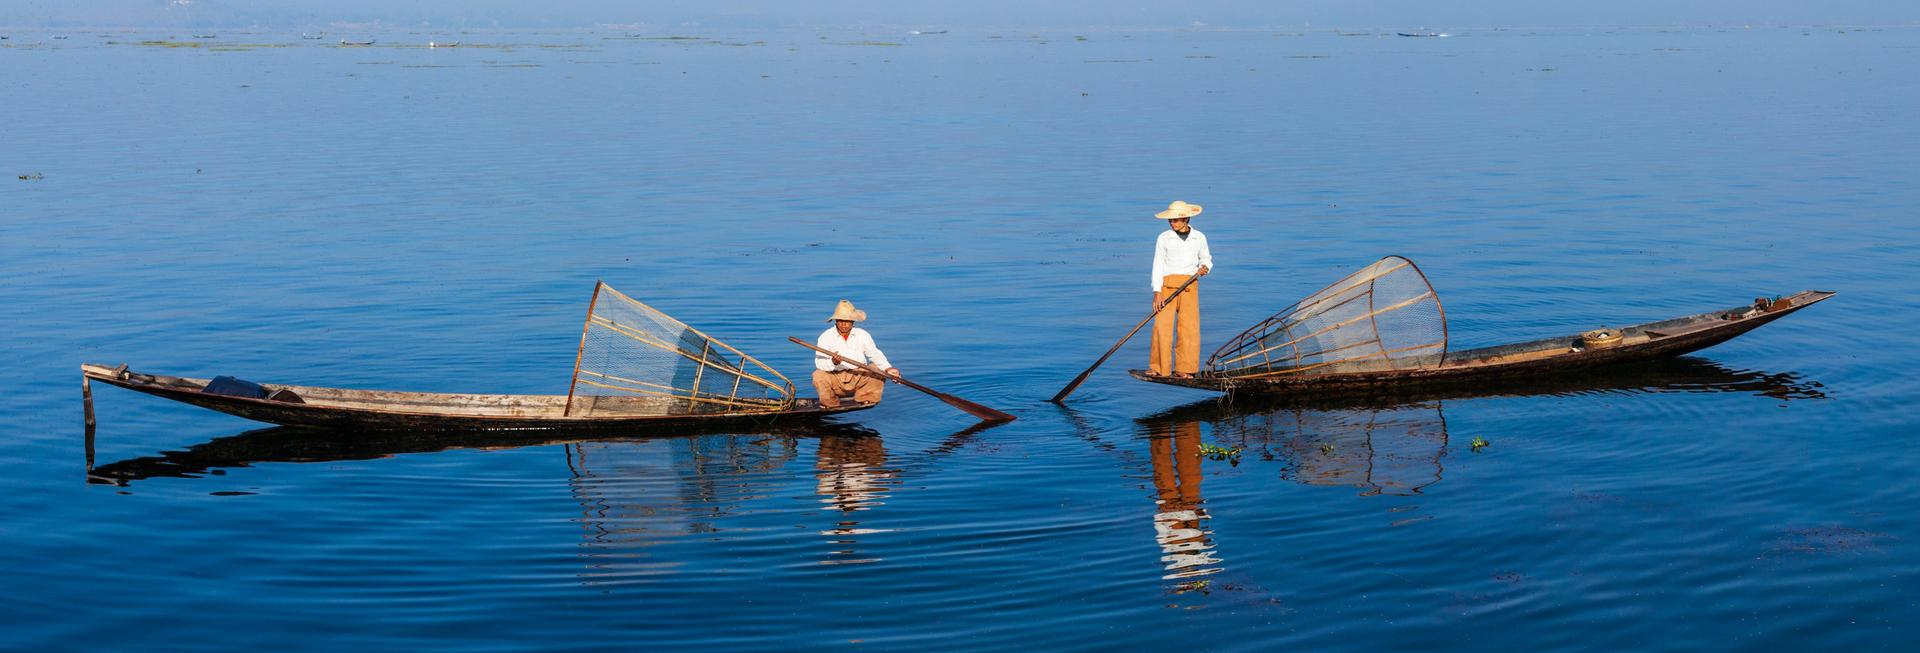 Fishermen, Inle Lake